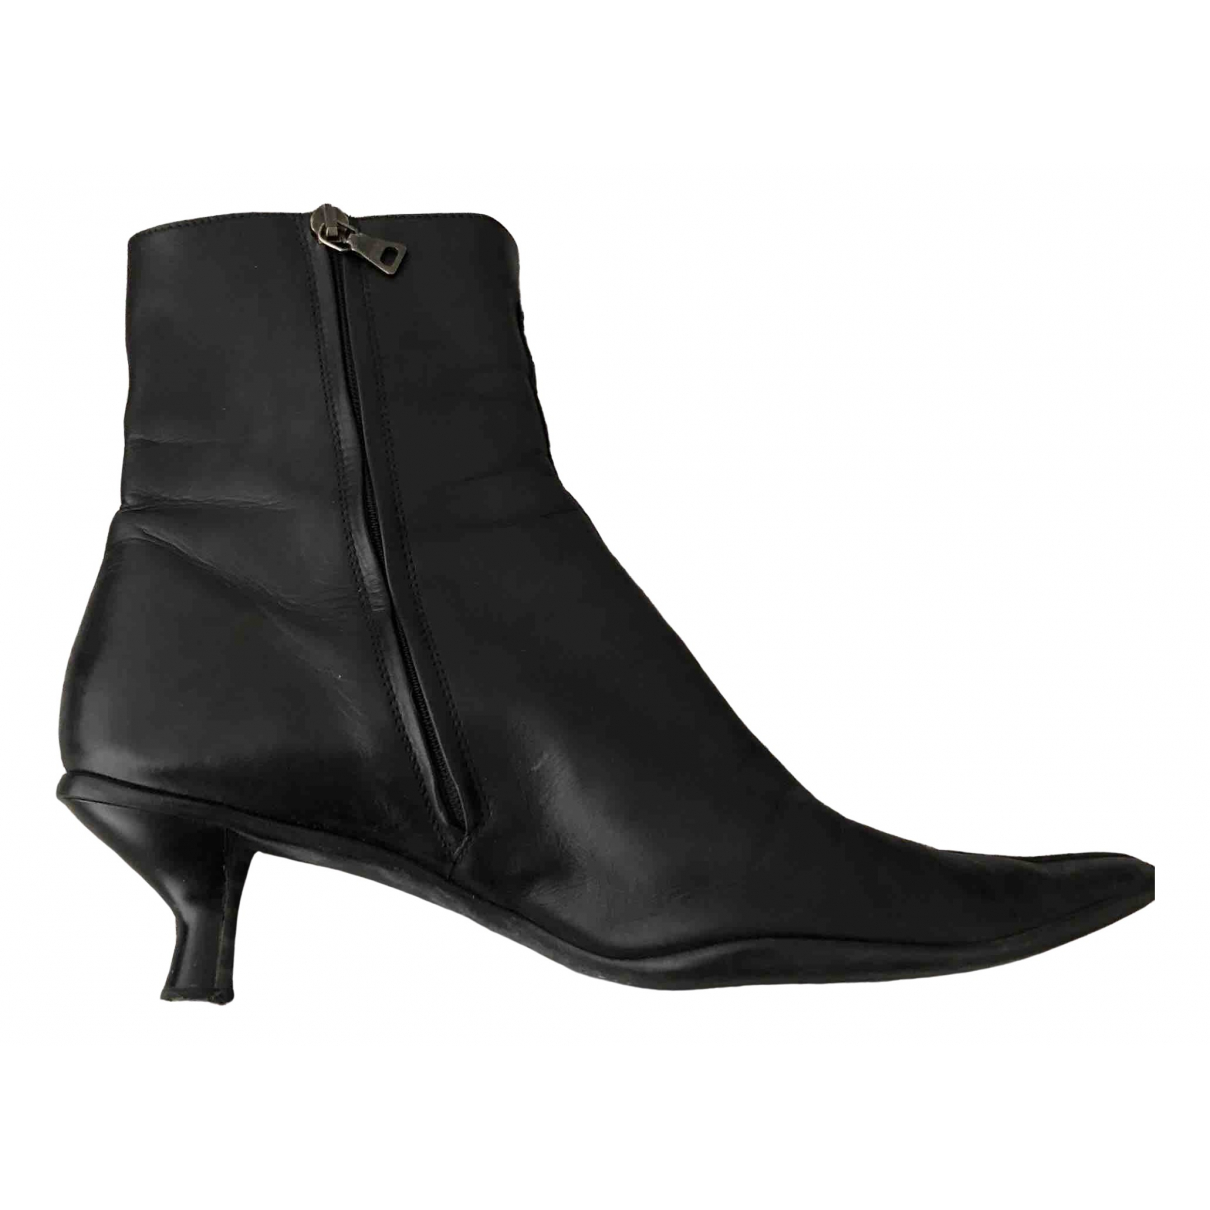 Prada \N Black Leather Ankle boots for Women 39 EU